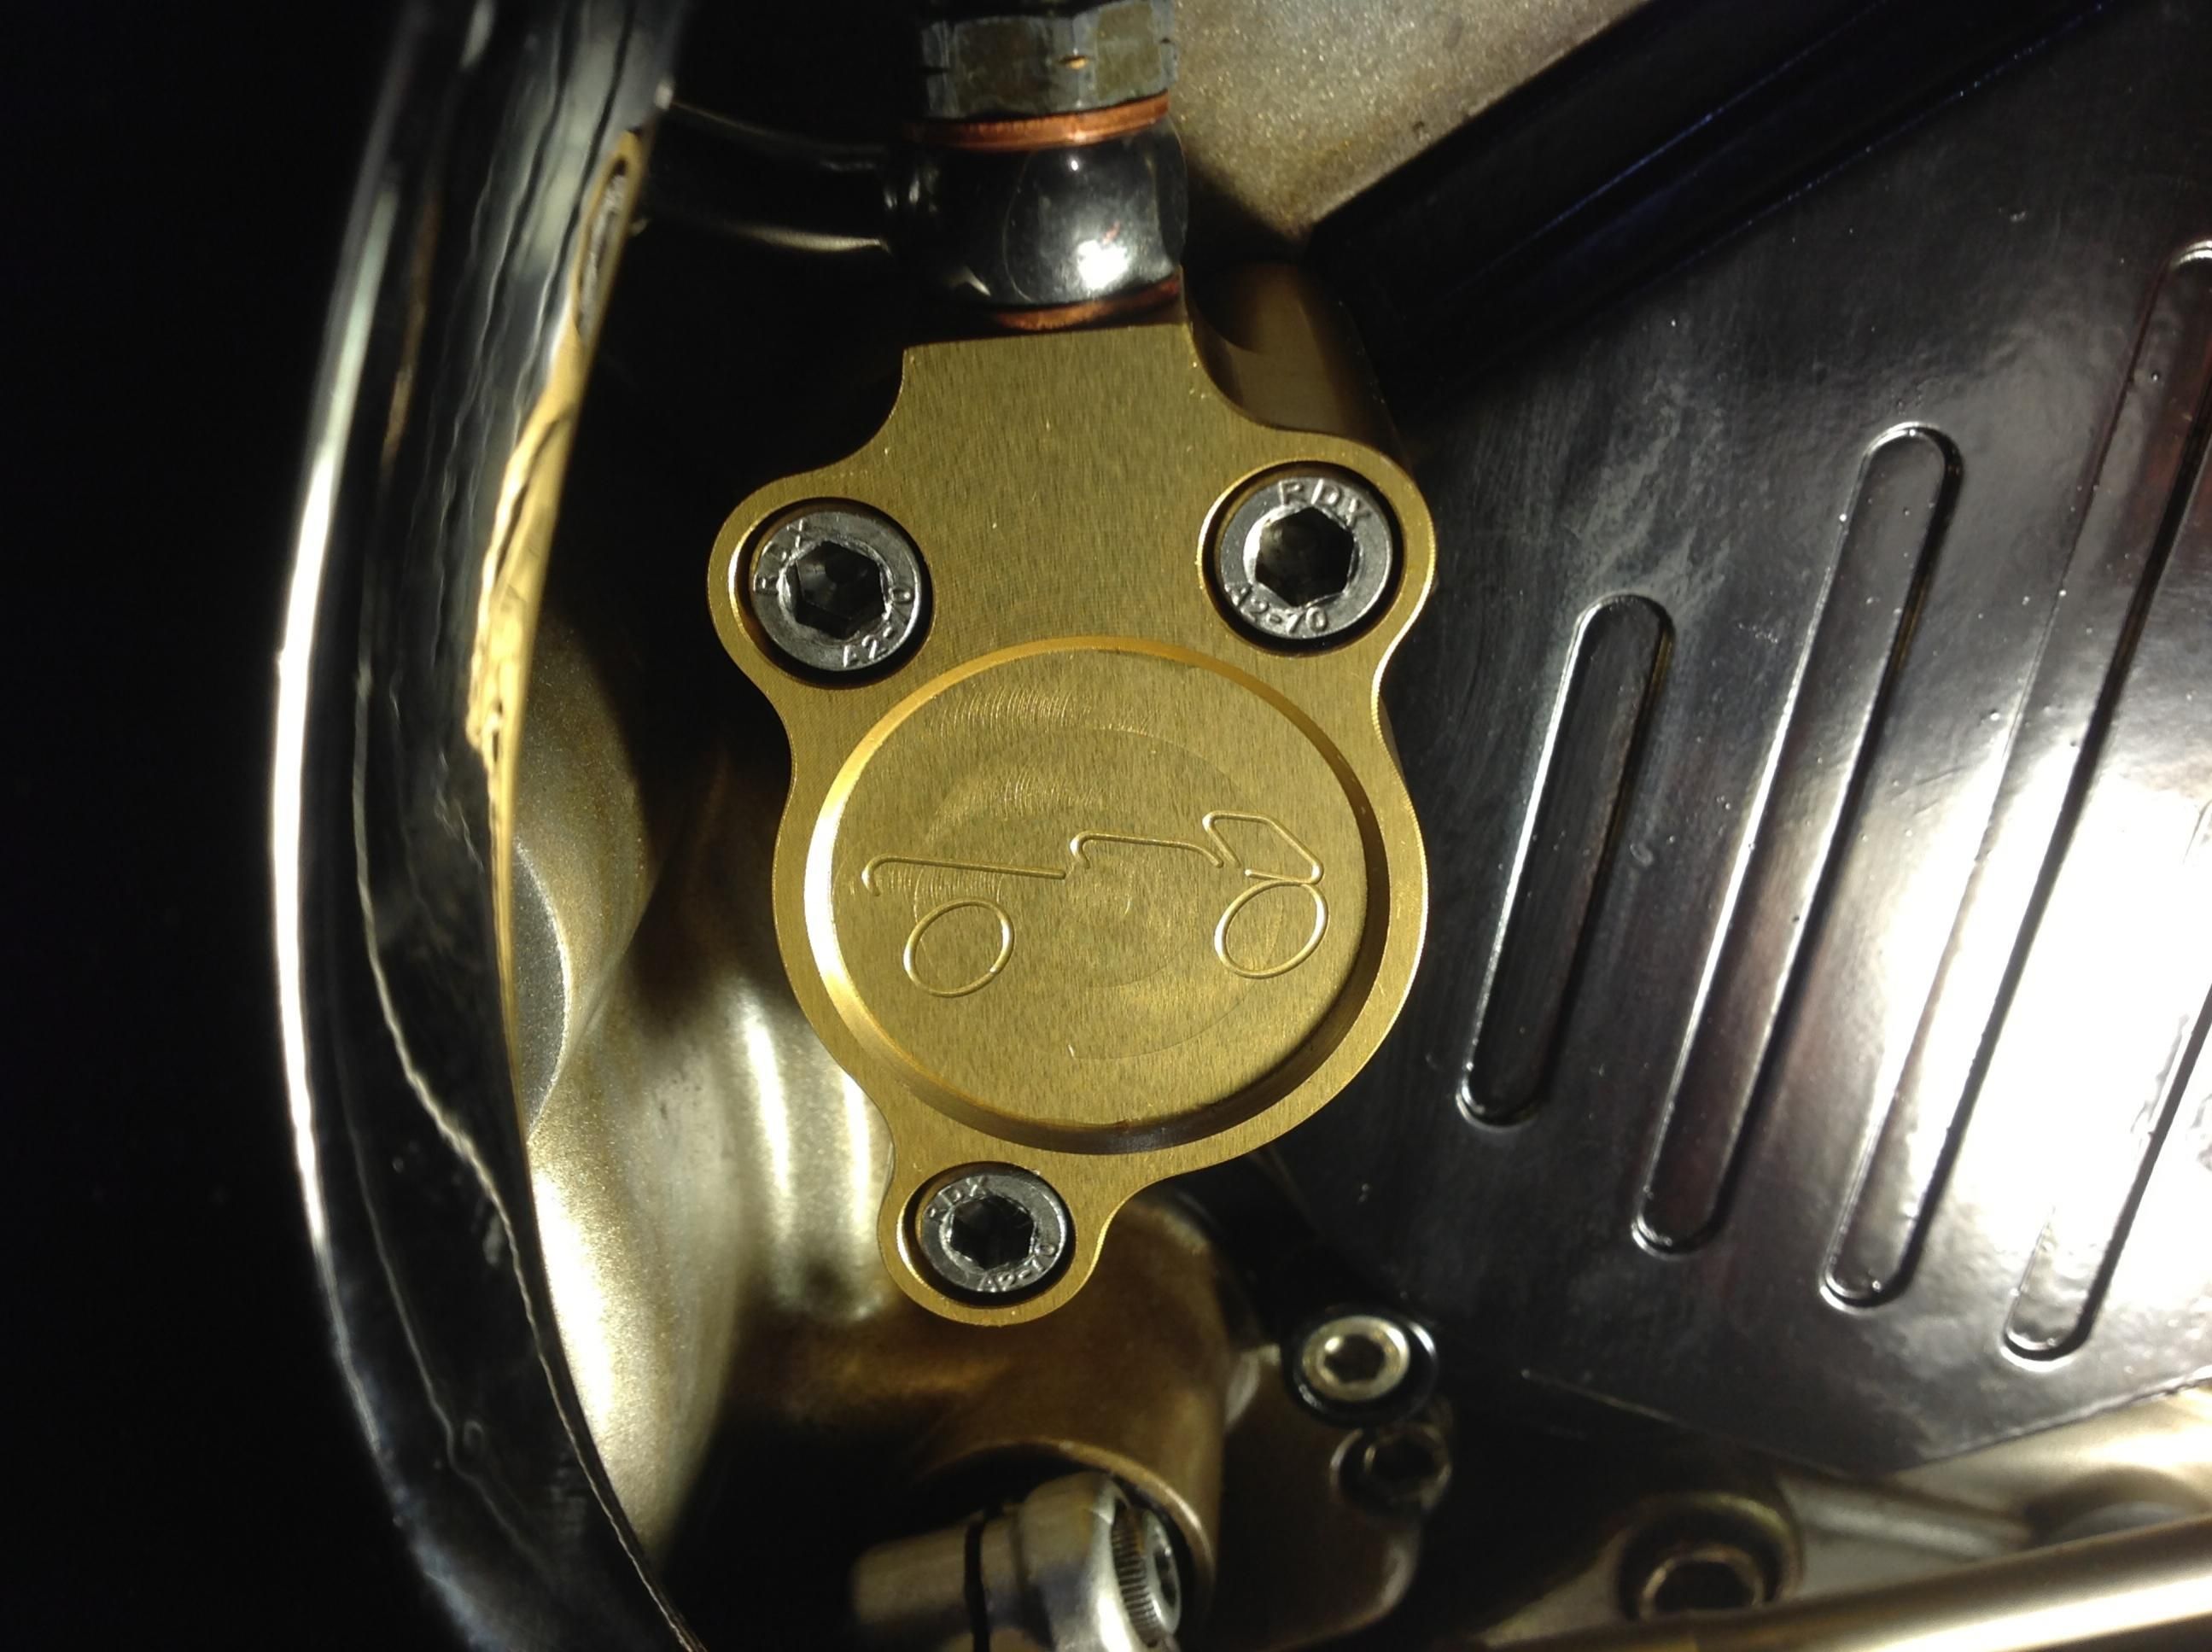 clutch lever engagement 748 - ducati.ms - the ultimate ducati forum